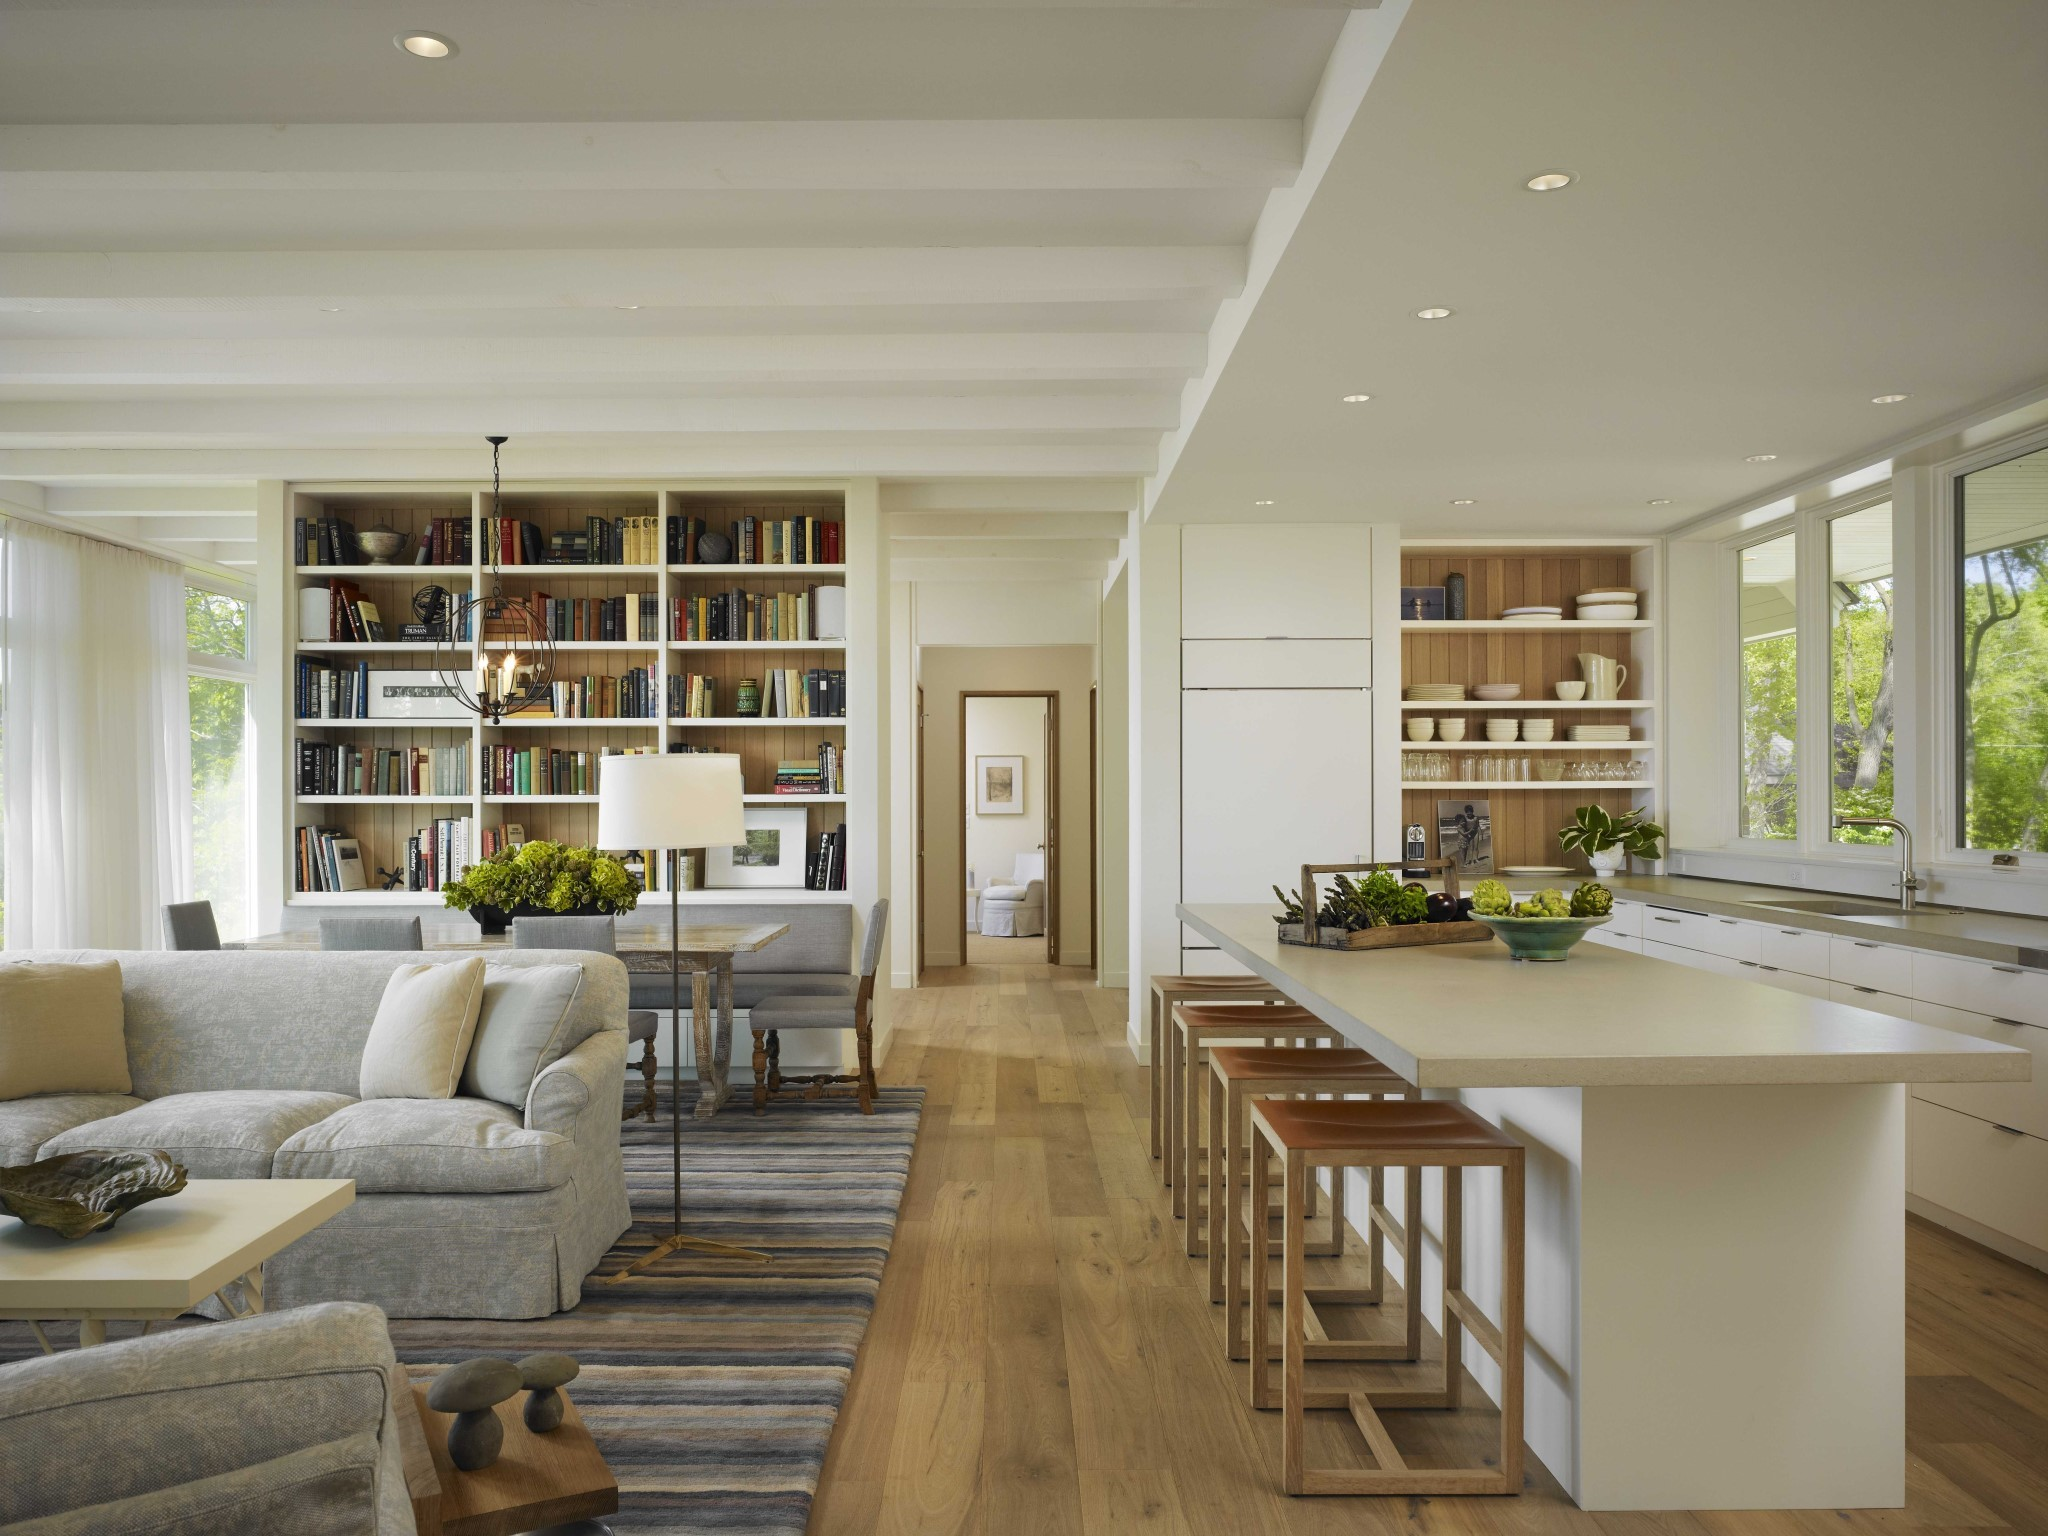 Design by Celeste Robbins, AIA of Robbins Architecture